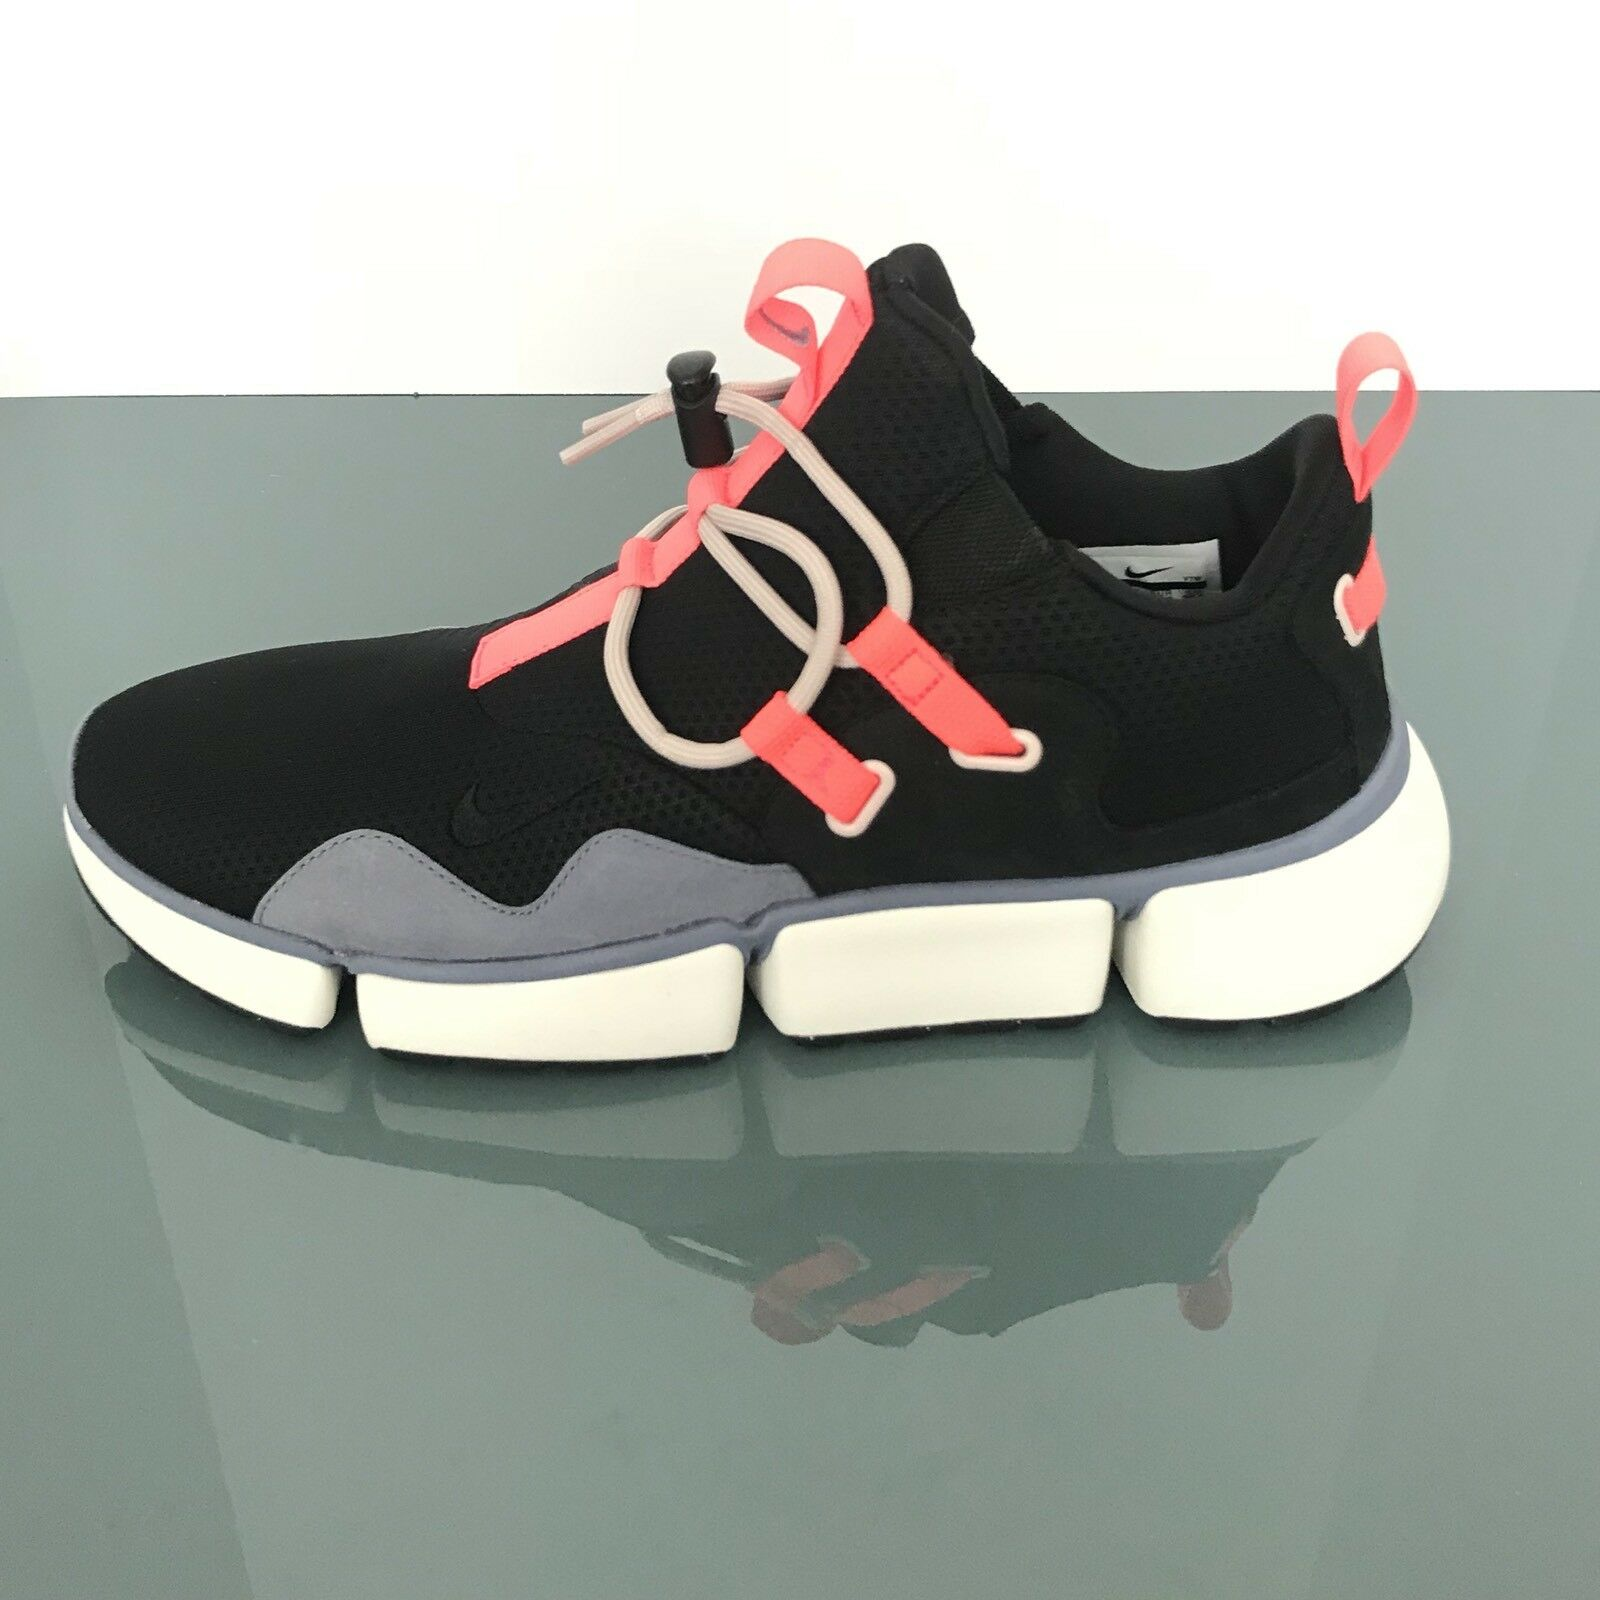 Nike NikeLab Pocketknife DM Black Hot Punch Dark Sky blueee 910571 001 Men Sz 11.5